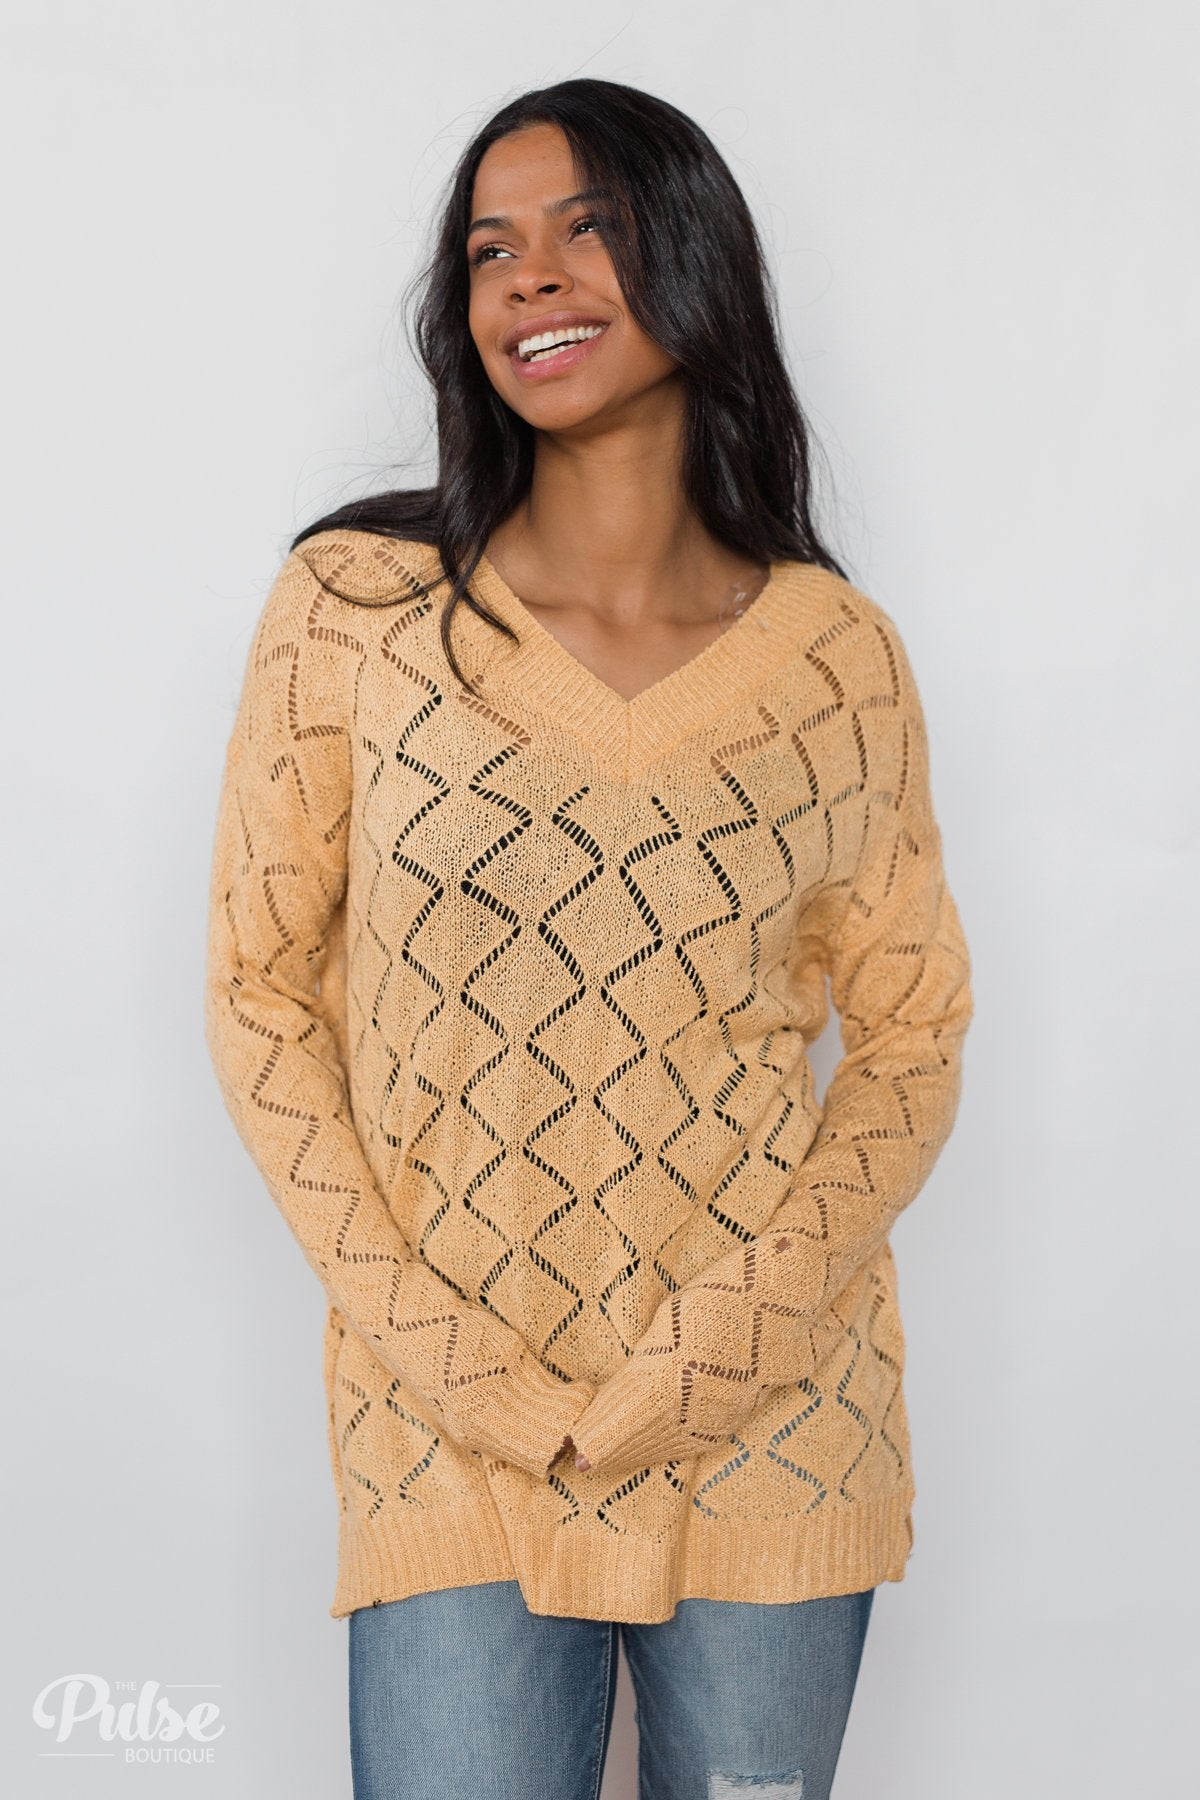 V-Neck Pointelle Knit Pullover - Mustard